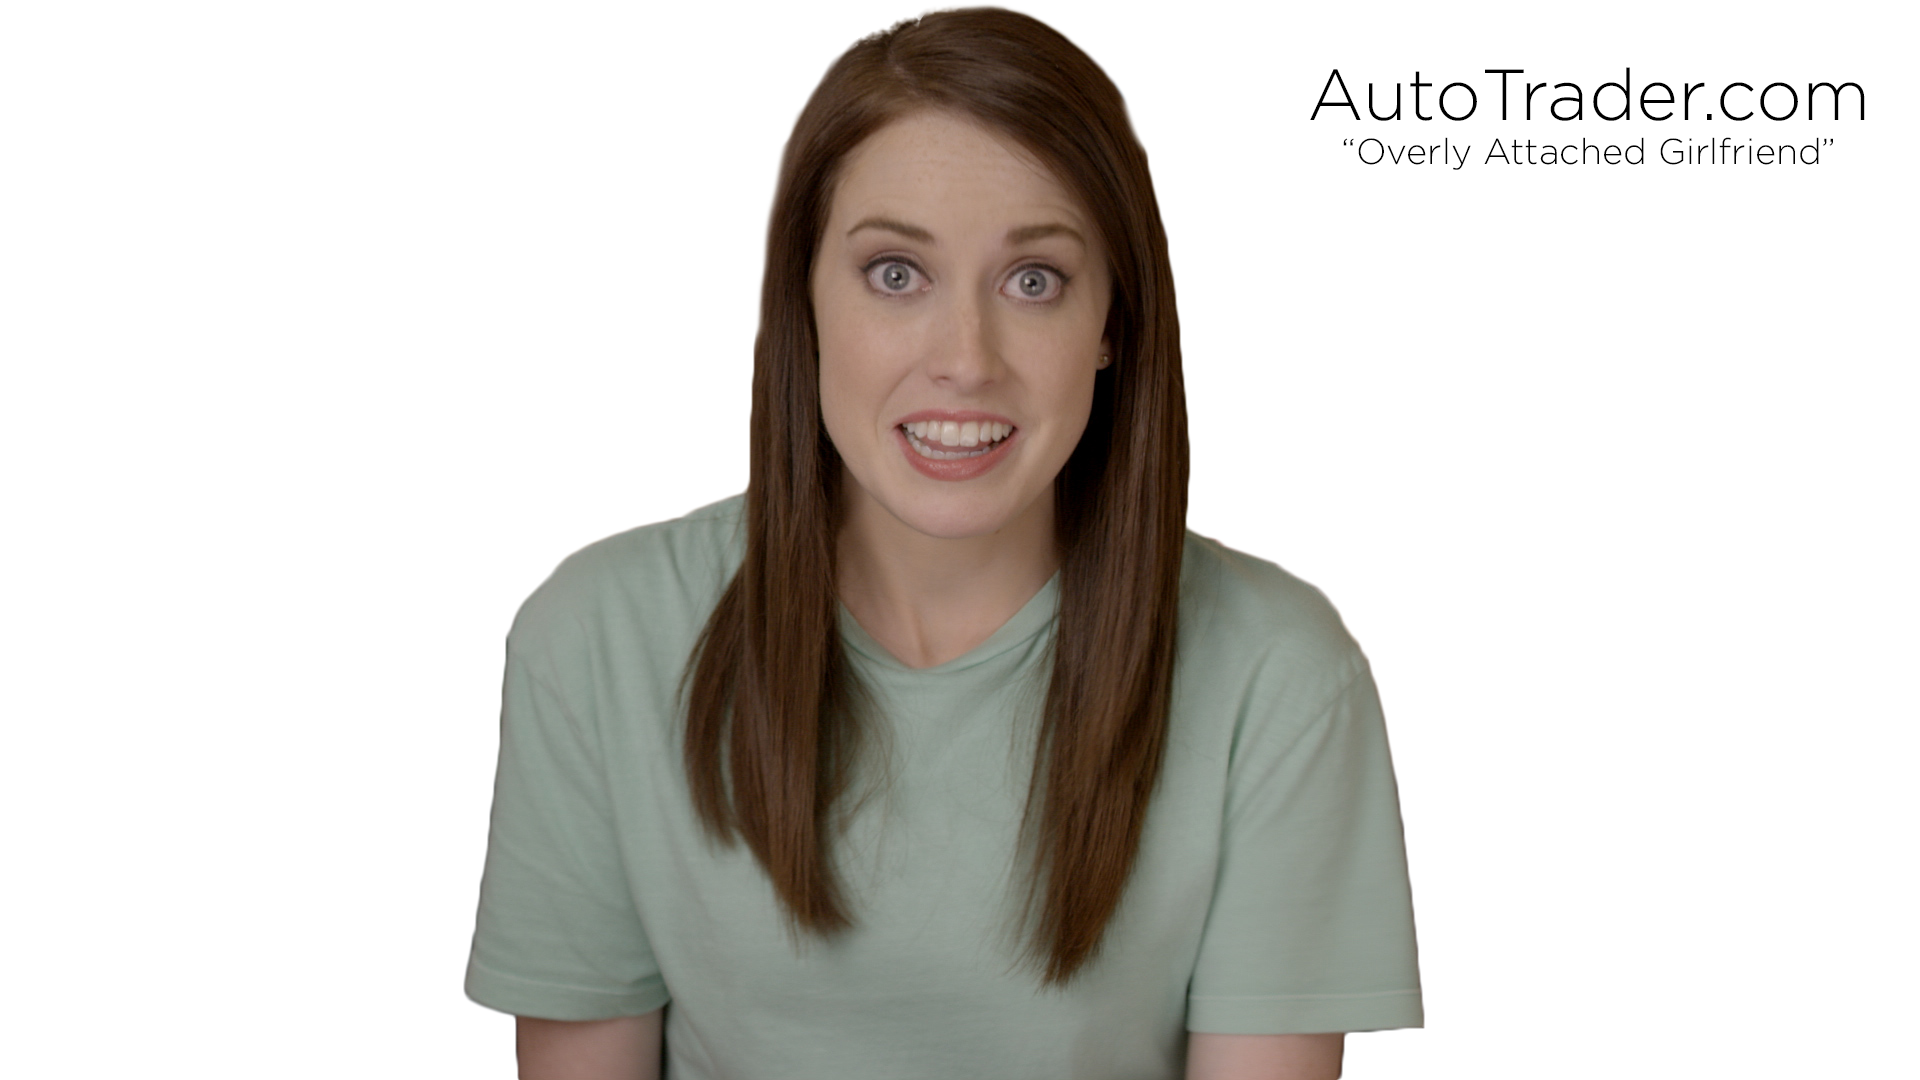 AutoTrader.com - Overly Attached Girlfriend